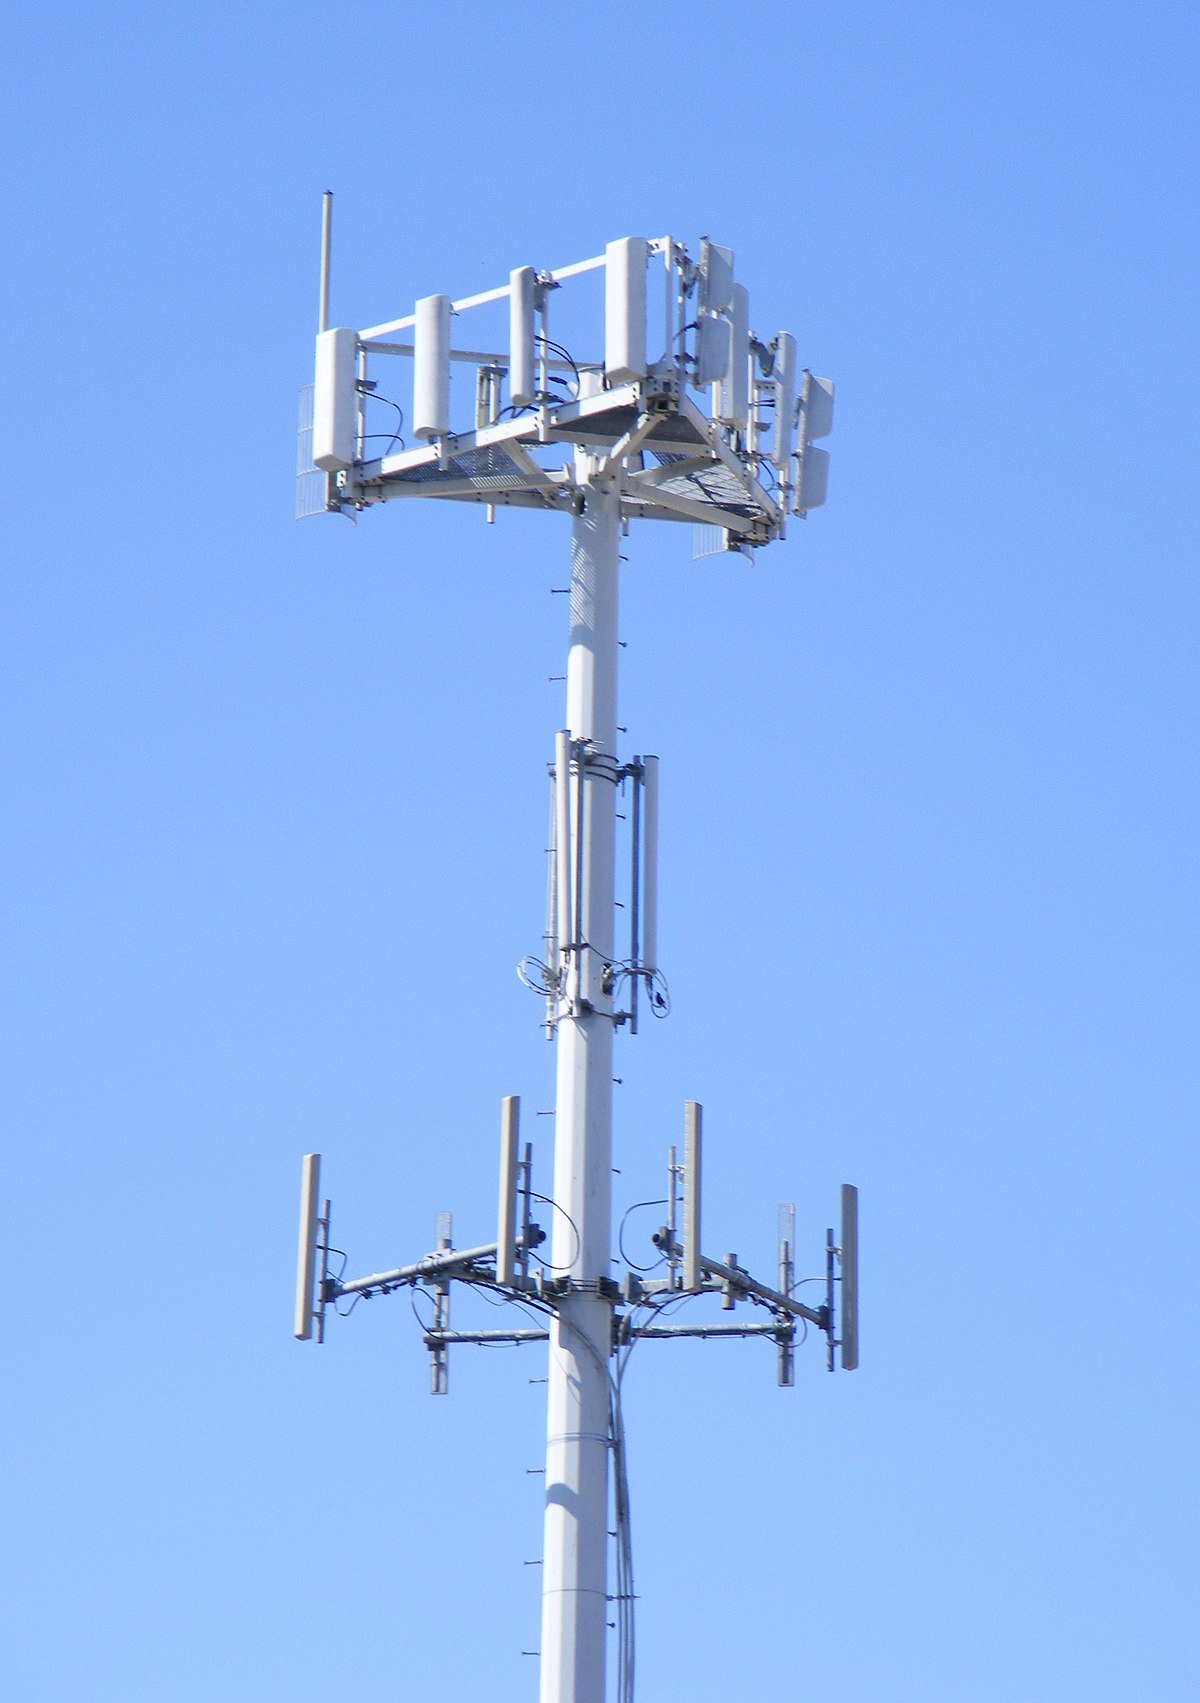 How I built my own mobile cell tower